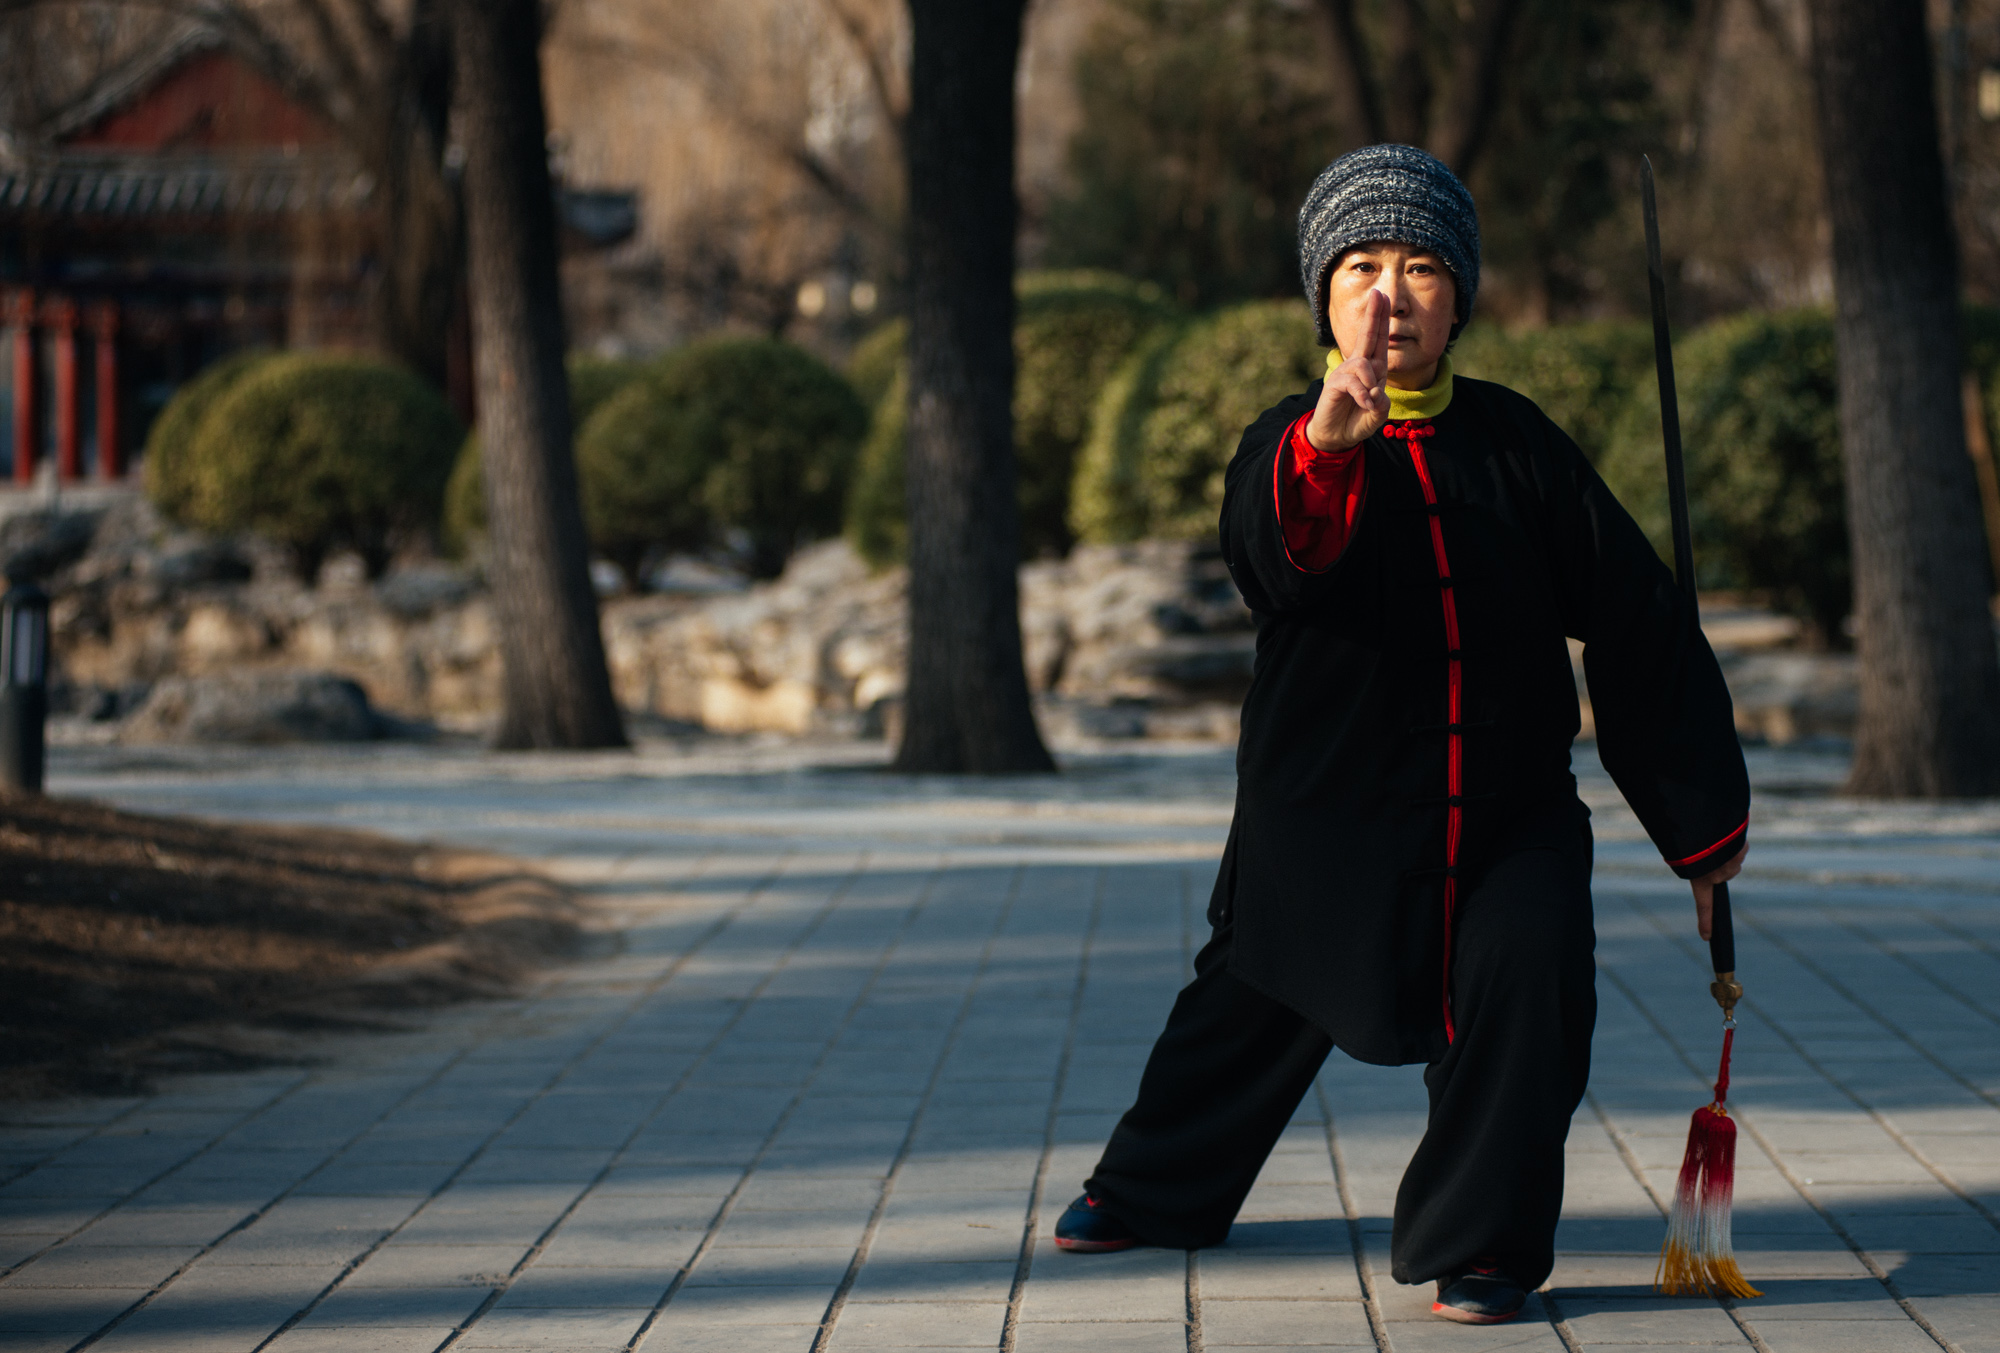 Woman practices  Taijijian  in the park.